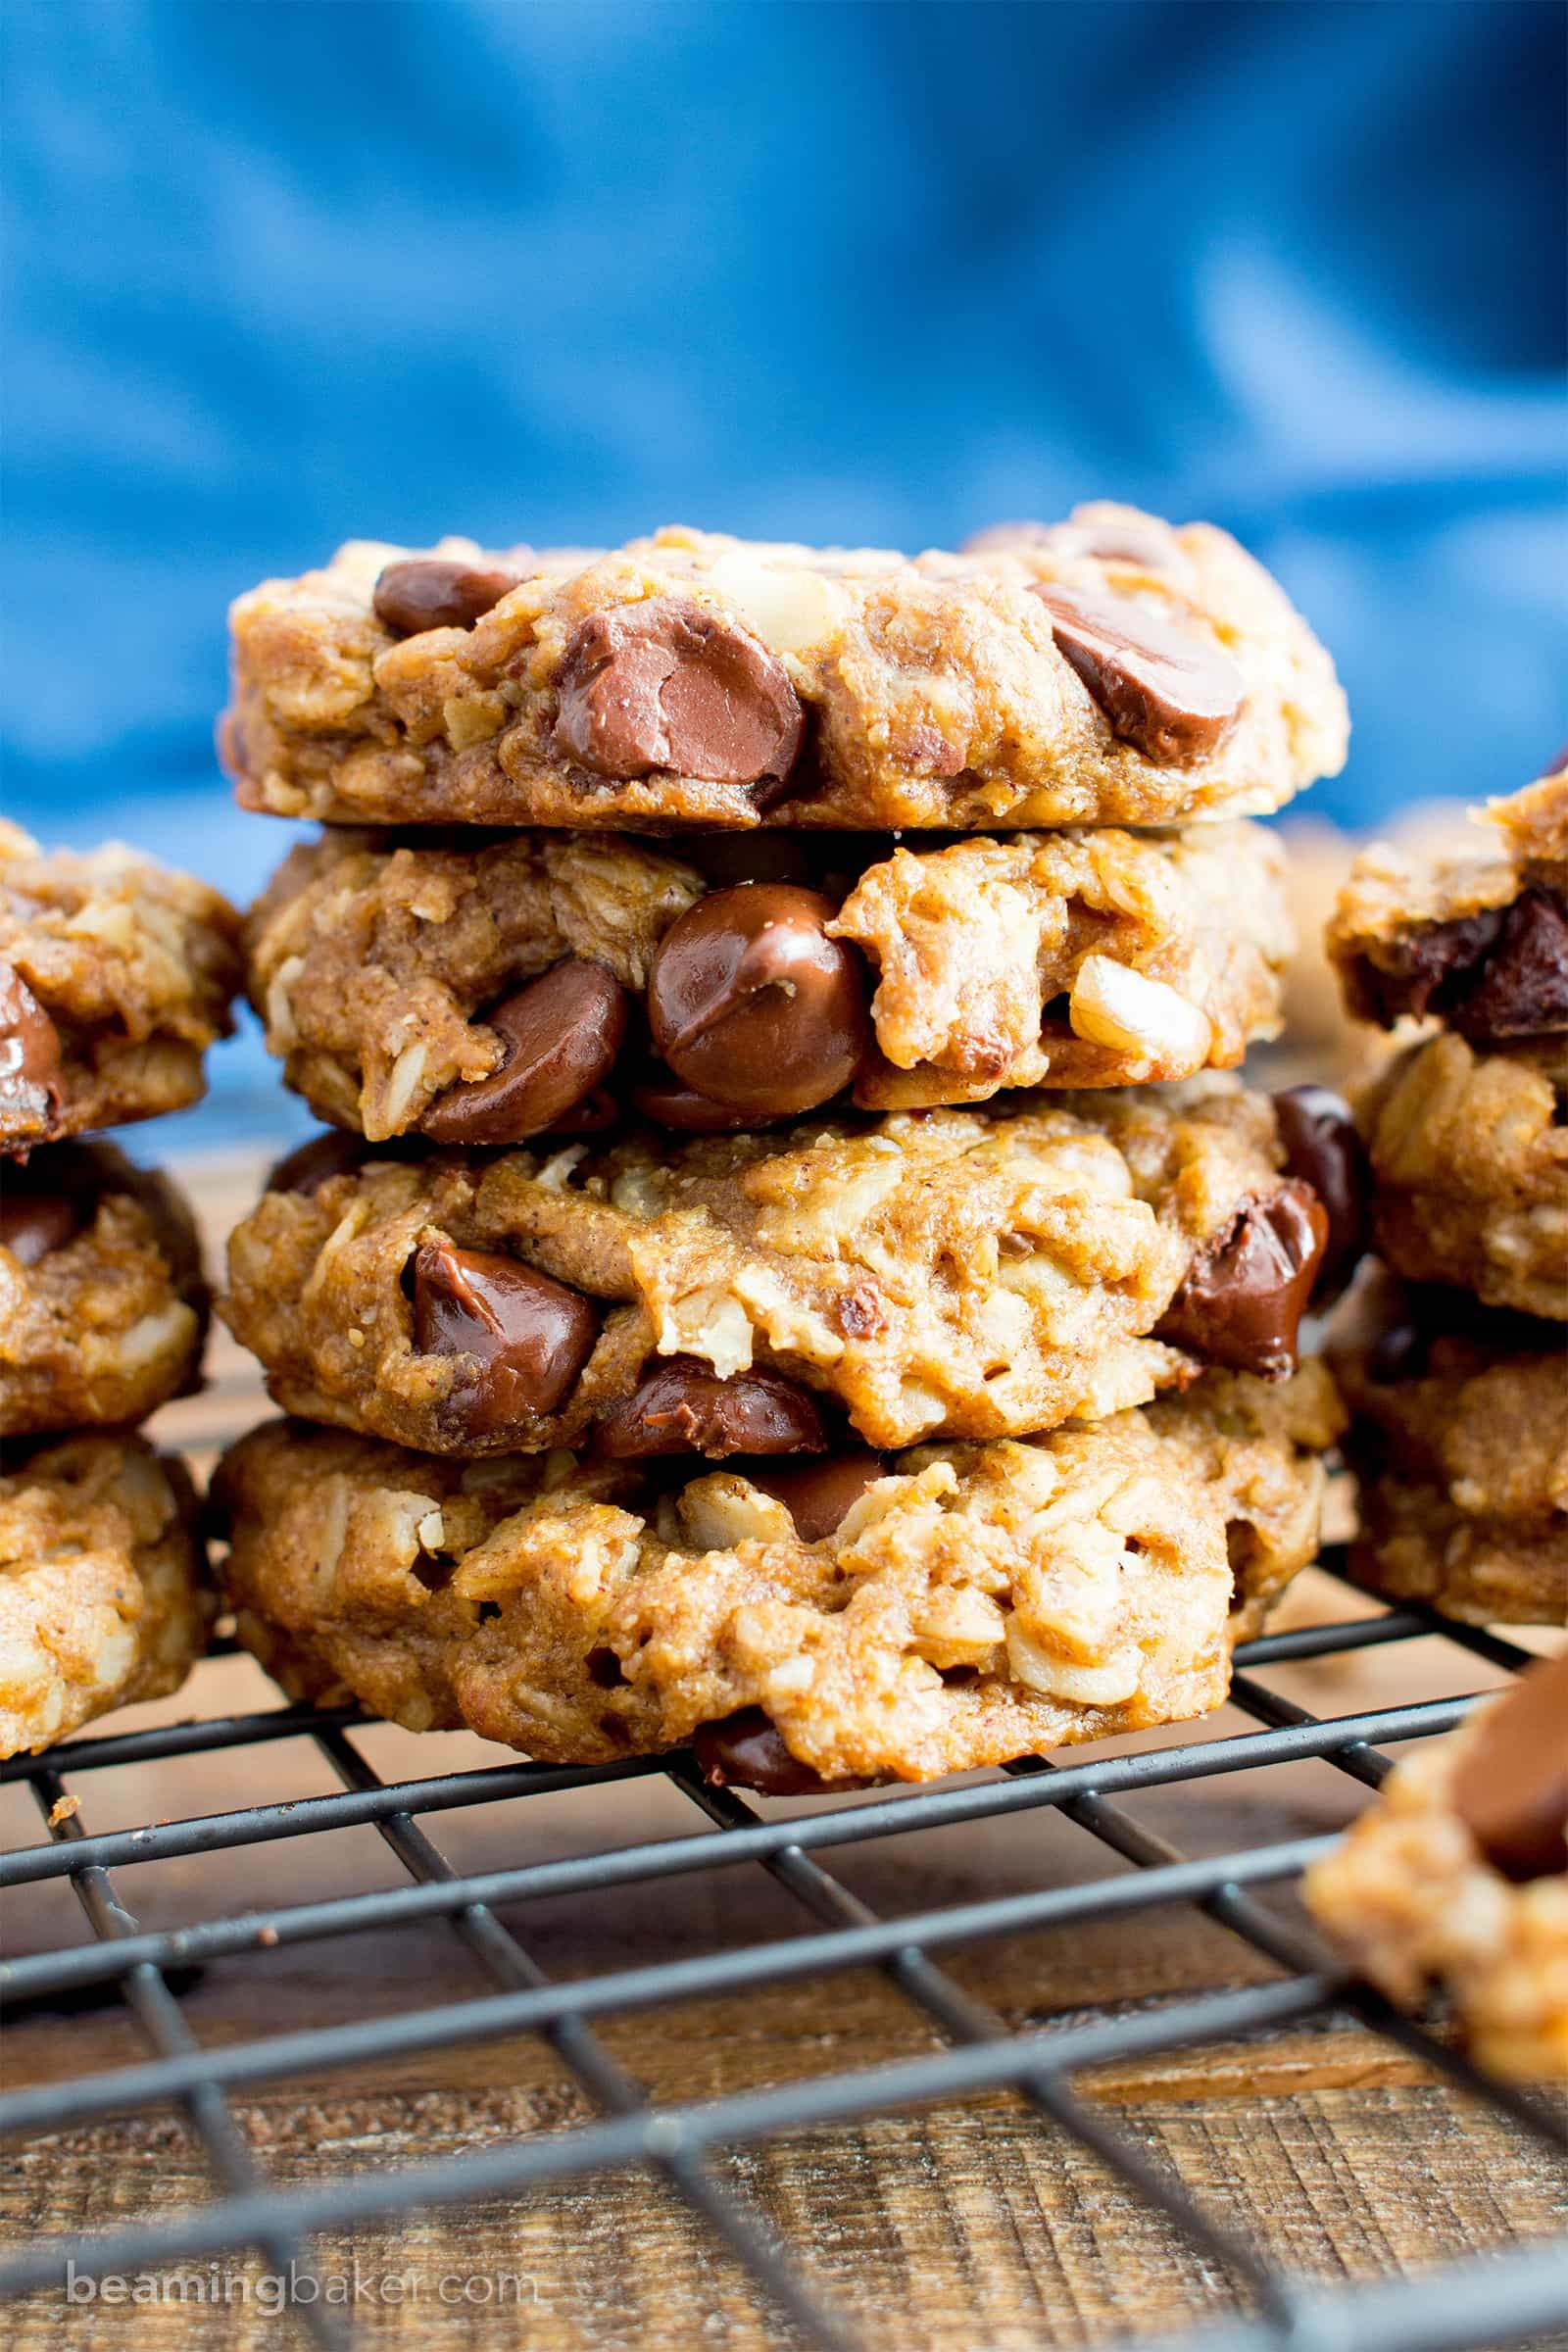 Easy Gluten Free Peanut Butter Chocolate Chip Oatmeal Cookie